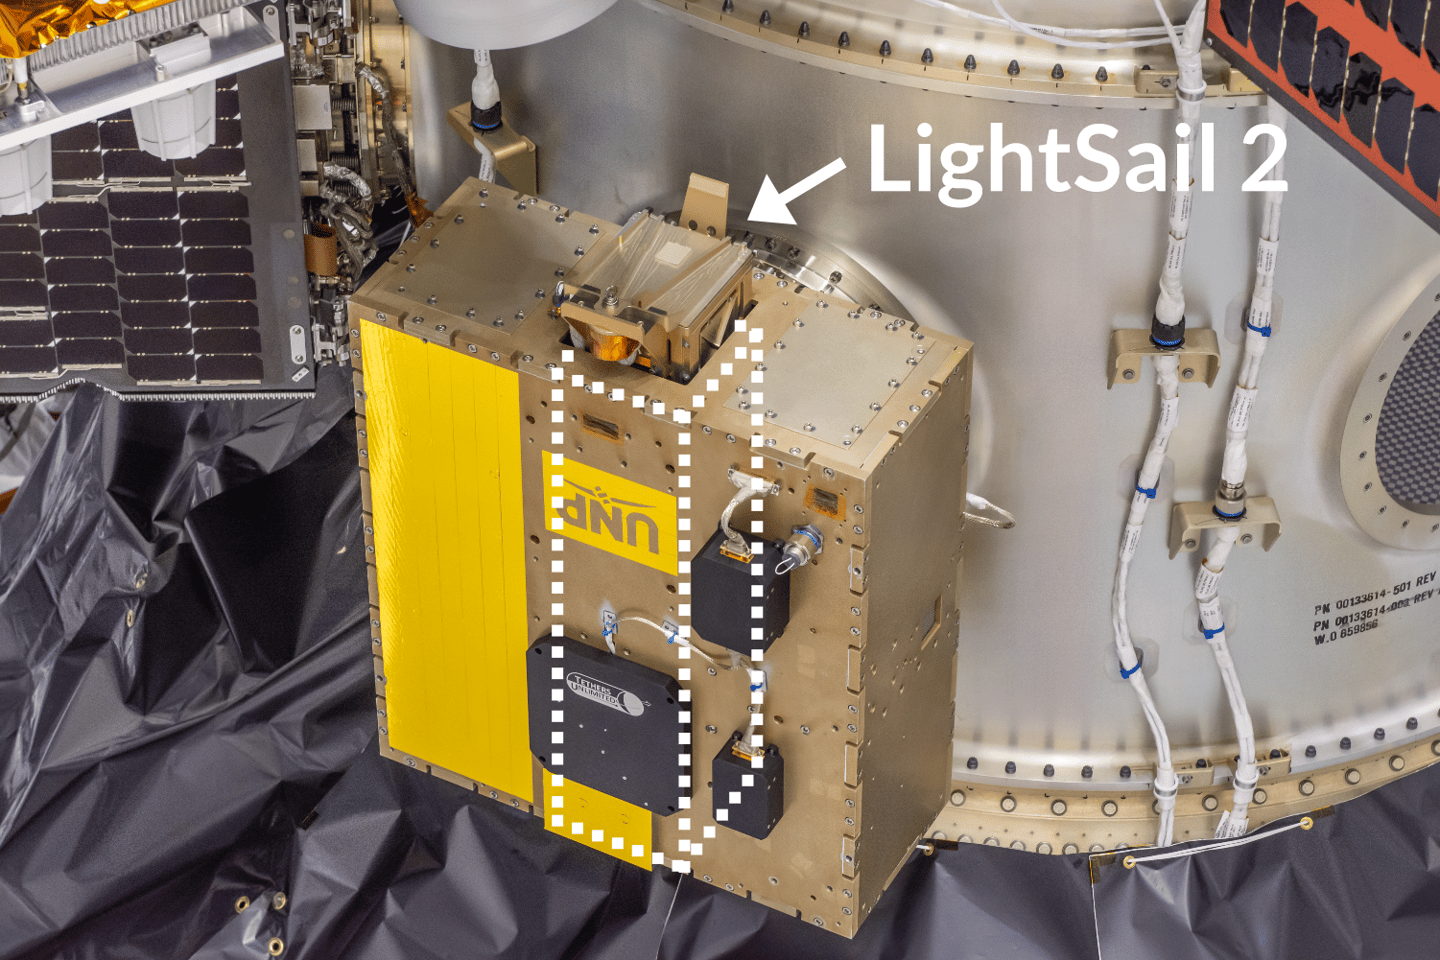 LightSail 2 CubeSat launches next week to test photon